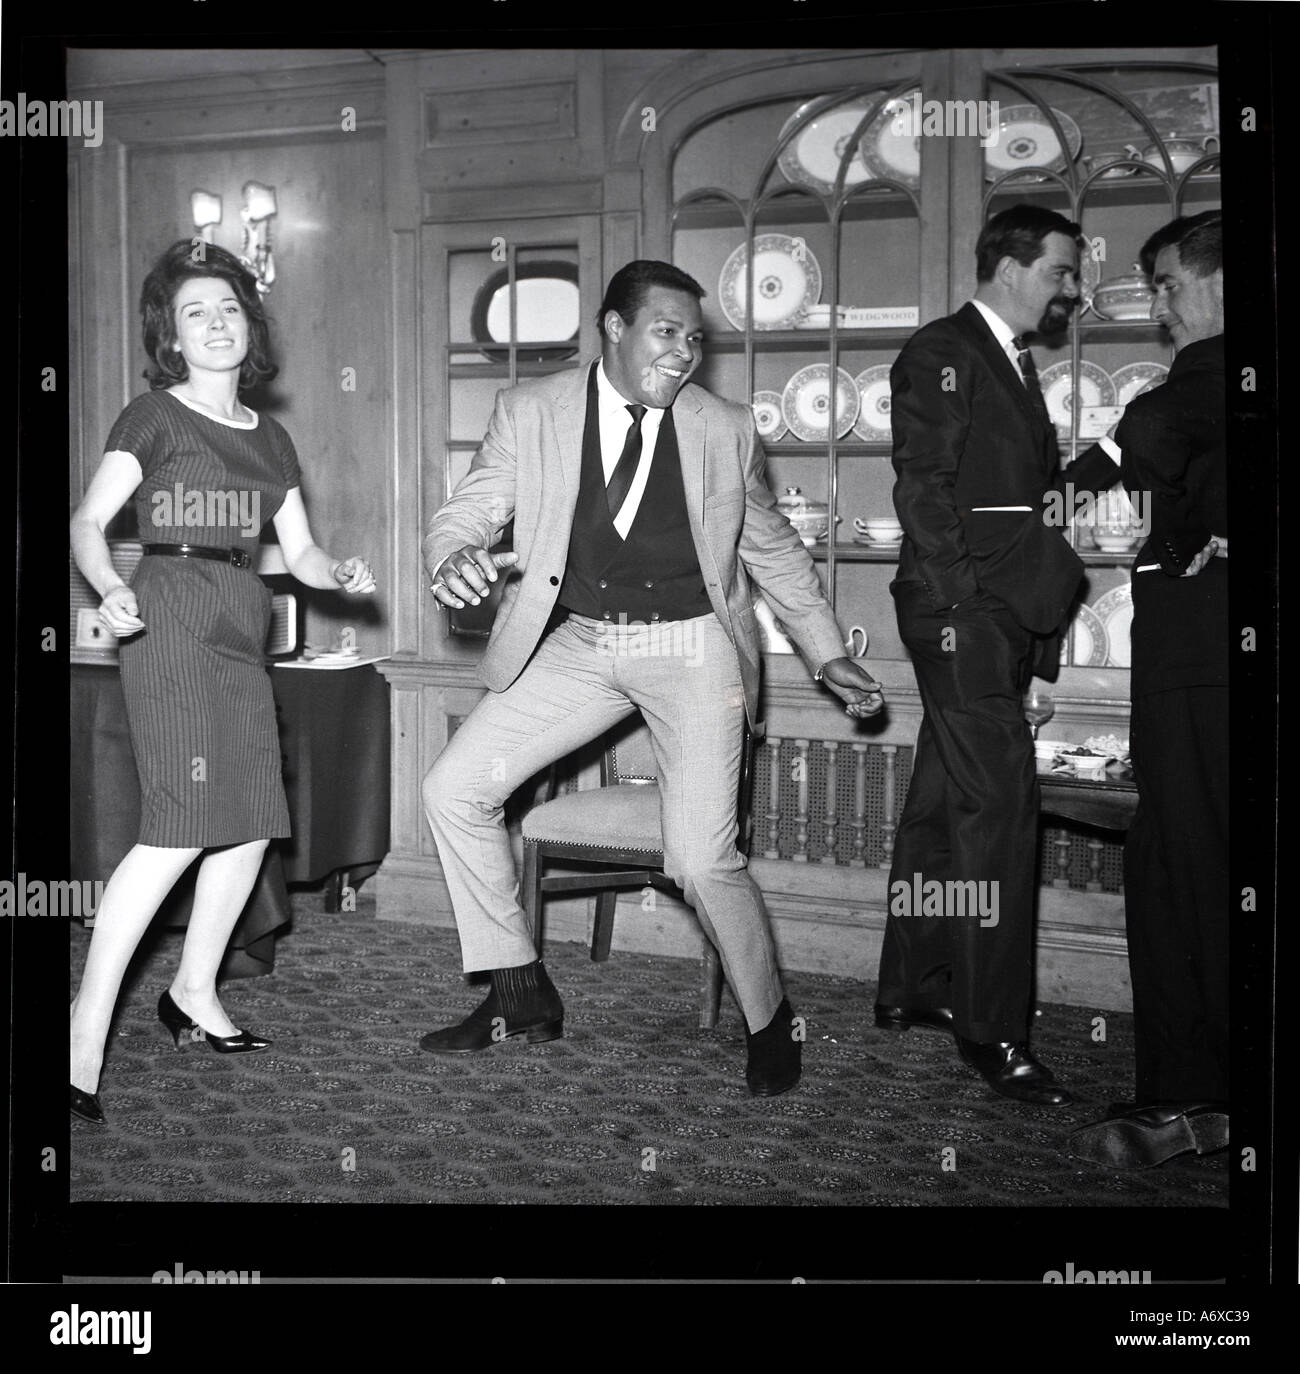 Chubby Checker doing the Twist. Photo by Harry Hammond, 1960s. Stock Photo